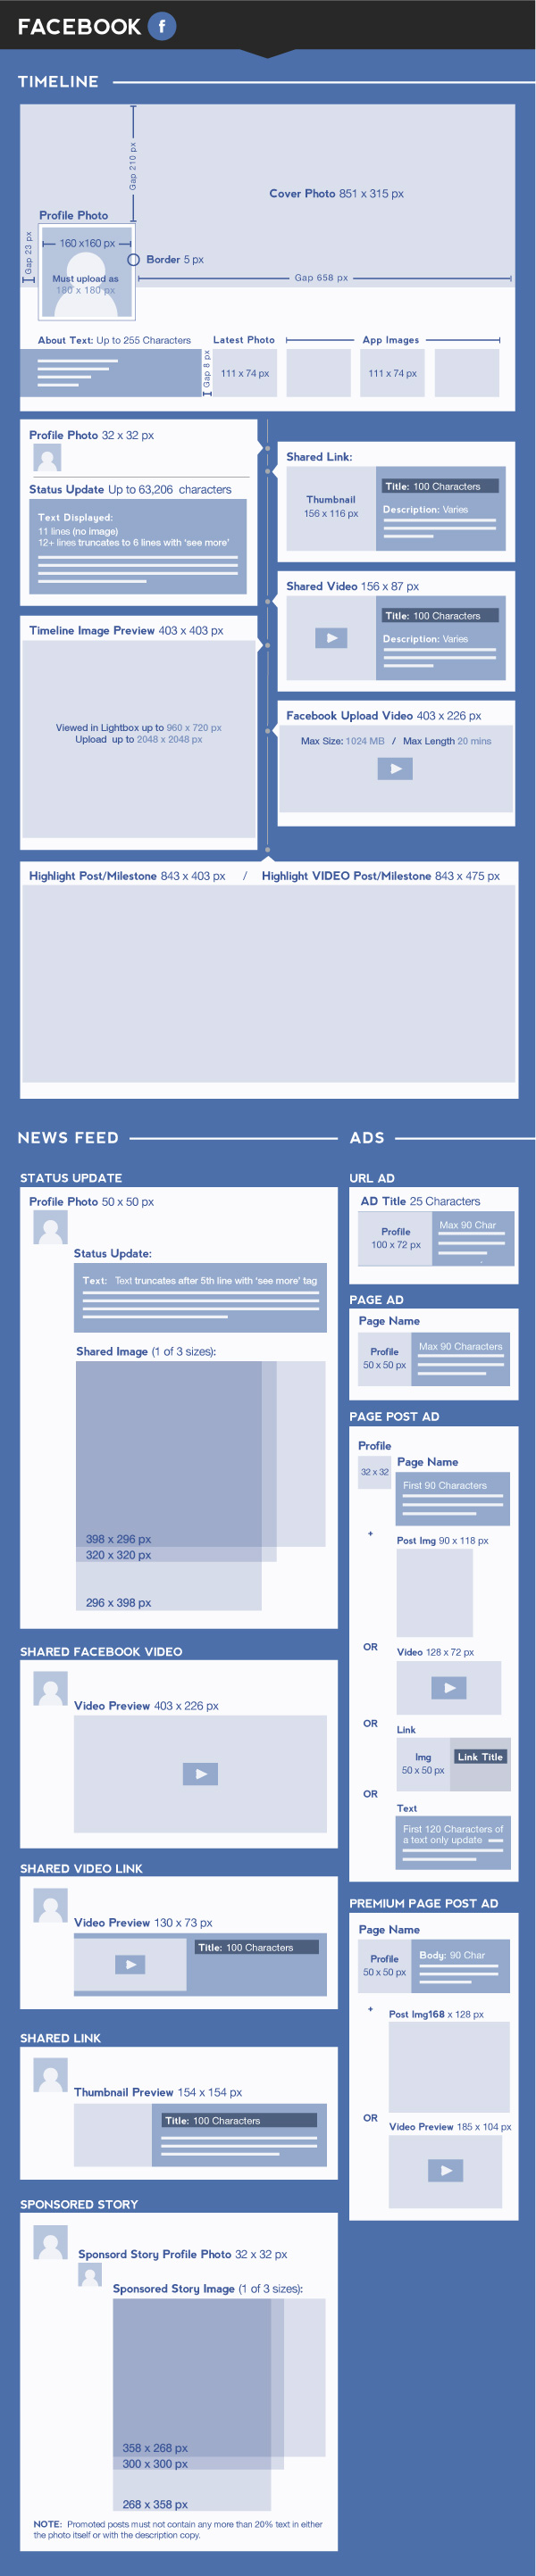 Facebook - A Complete Social Media Image Size Guide [INFOGRAPHIC] - PSW Group Blog